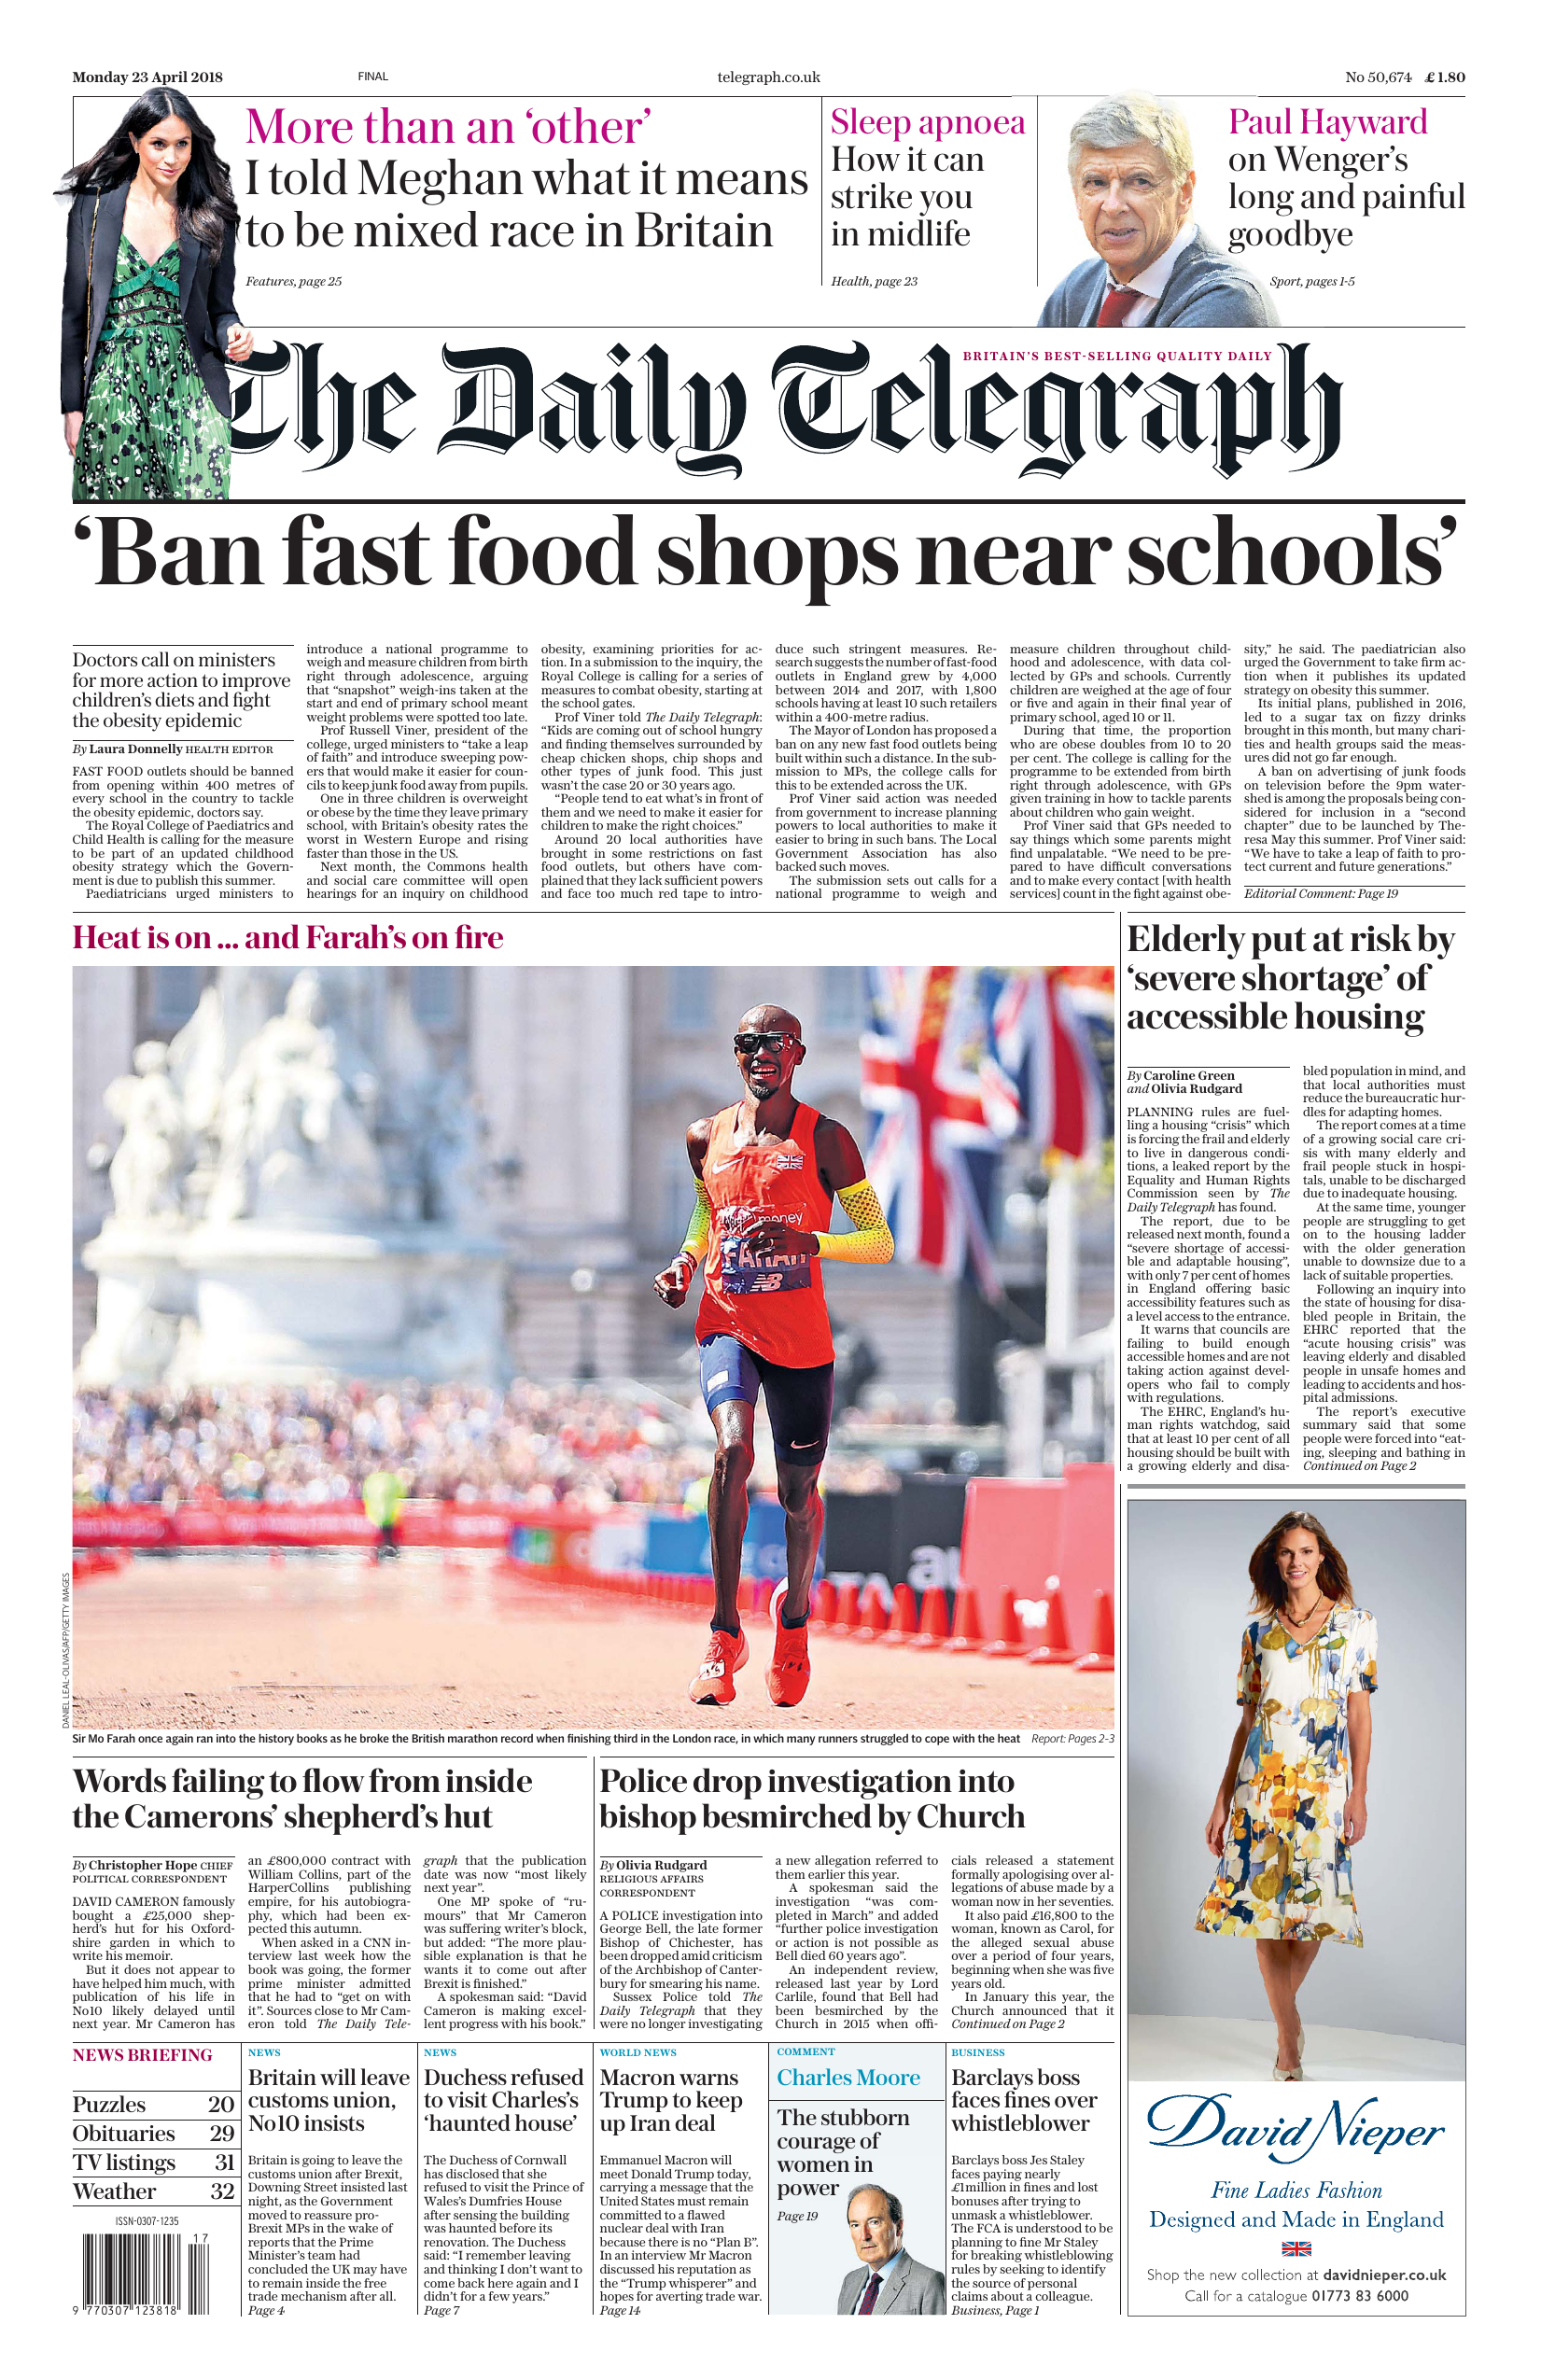 The Daily Telegraph April 23 2018